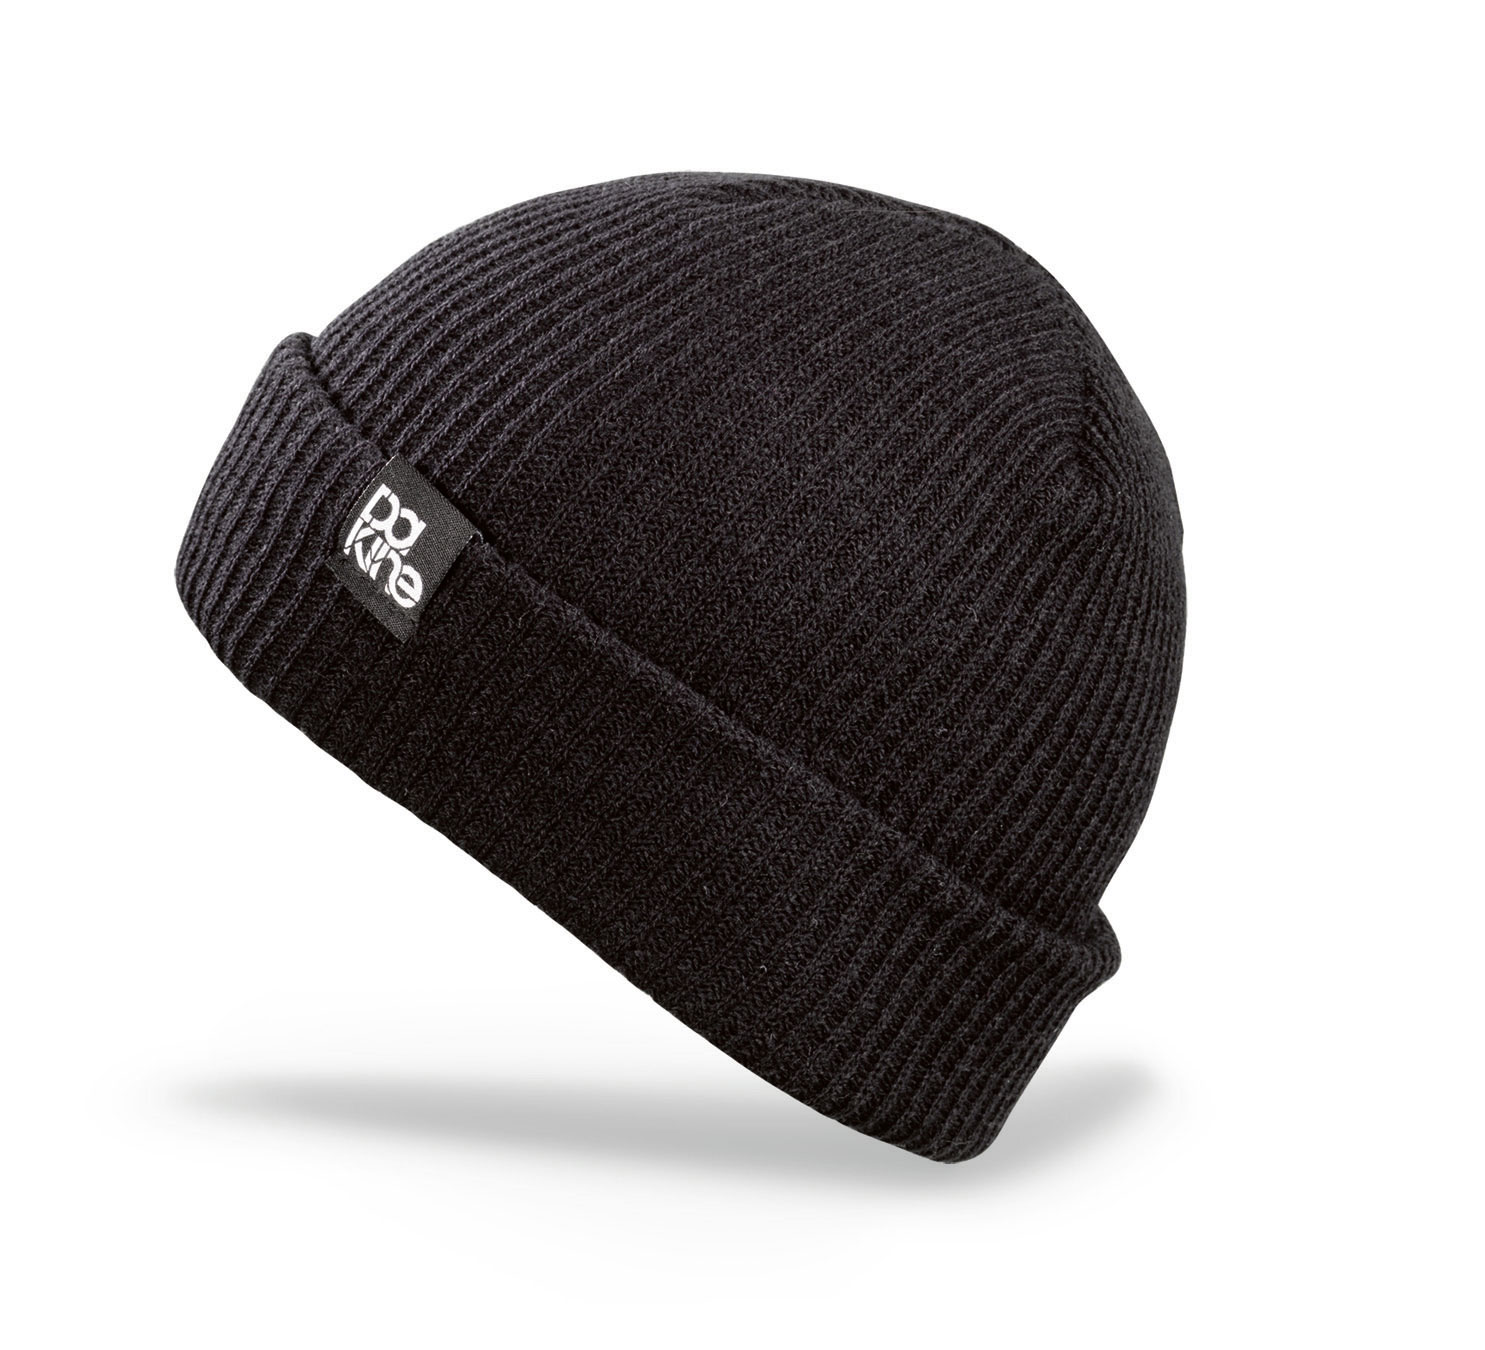 Snowboard Key Features of the Dakine Tall Boy Beanie: Acrylic ribbed knit Double lined Wear slouchy or cuffed - $20.00